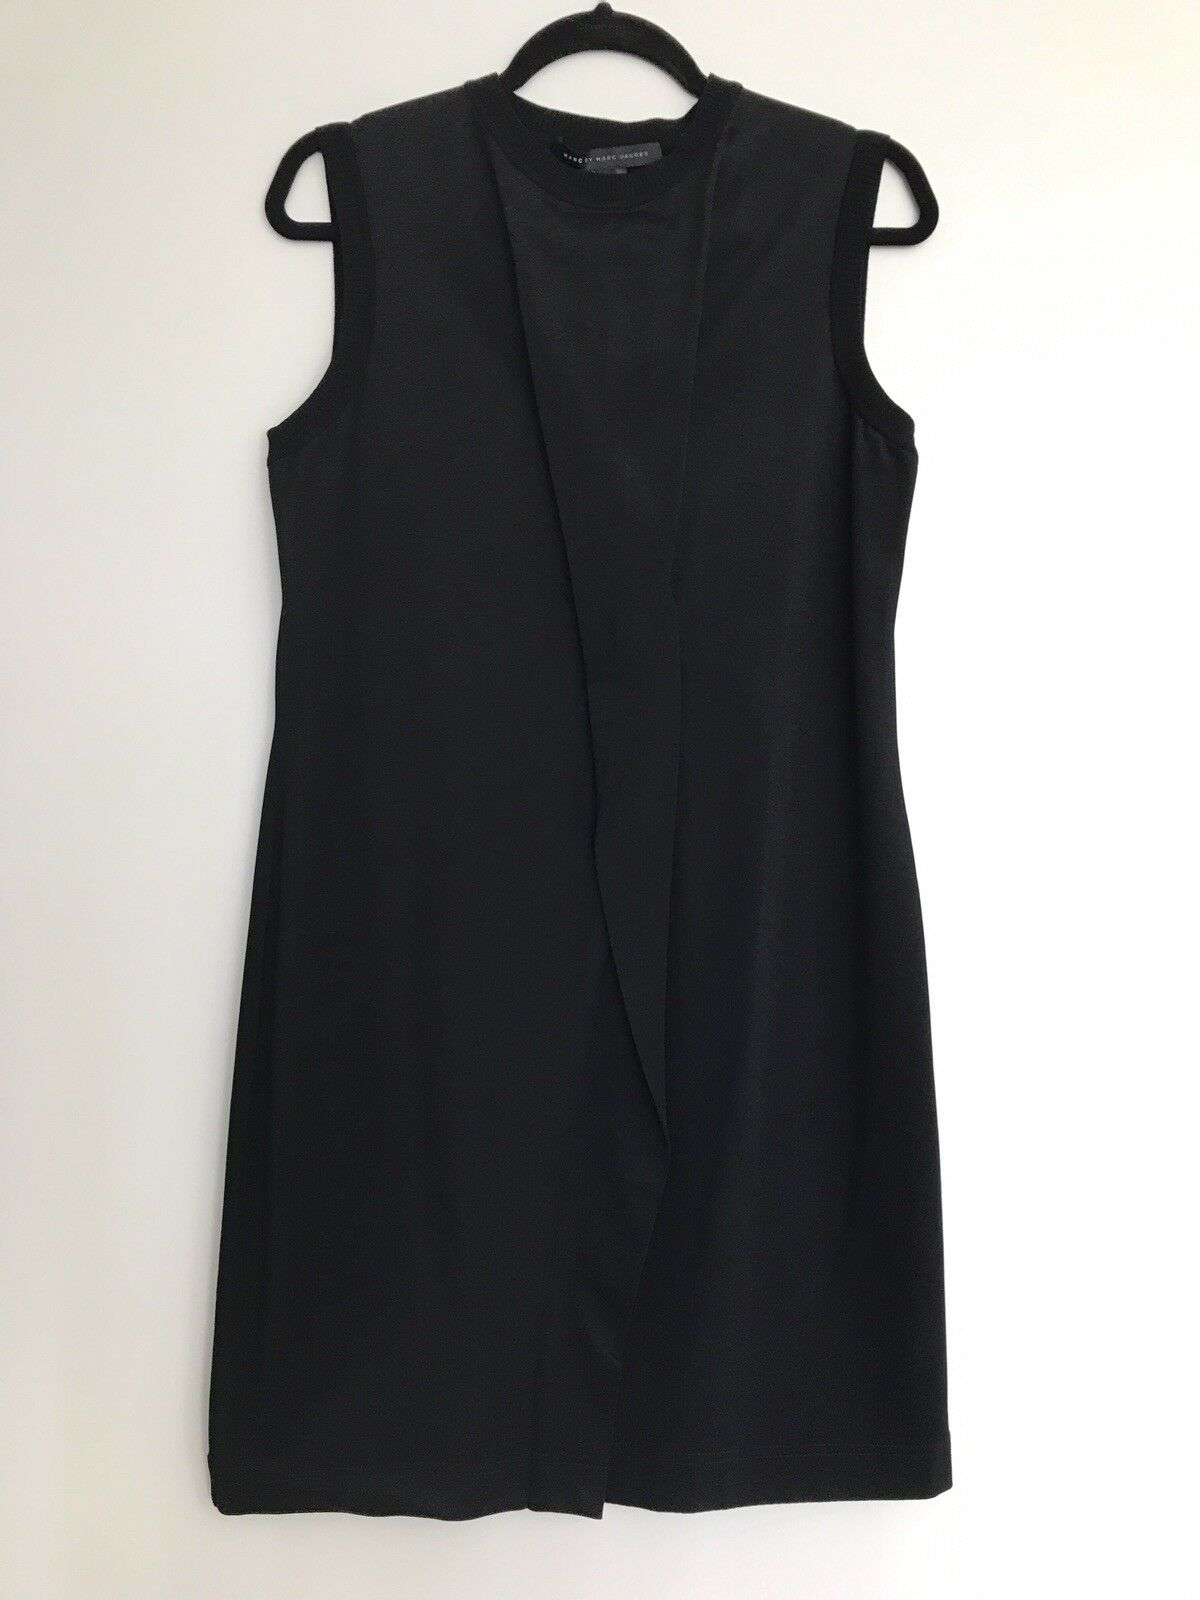 Marc by Marc Jacobs Front Pleat Fitted Dress - Größe M